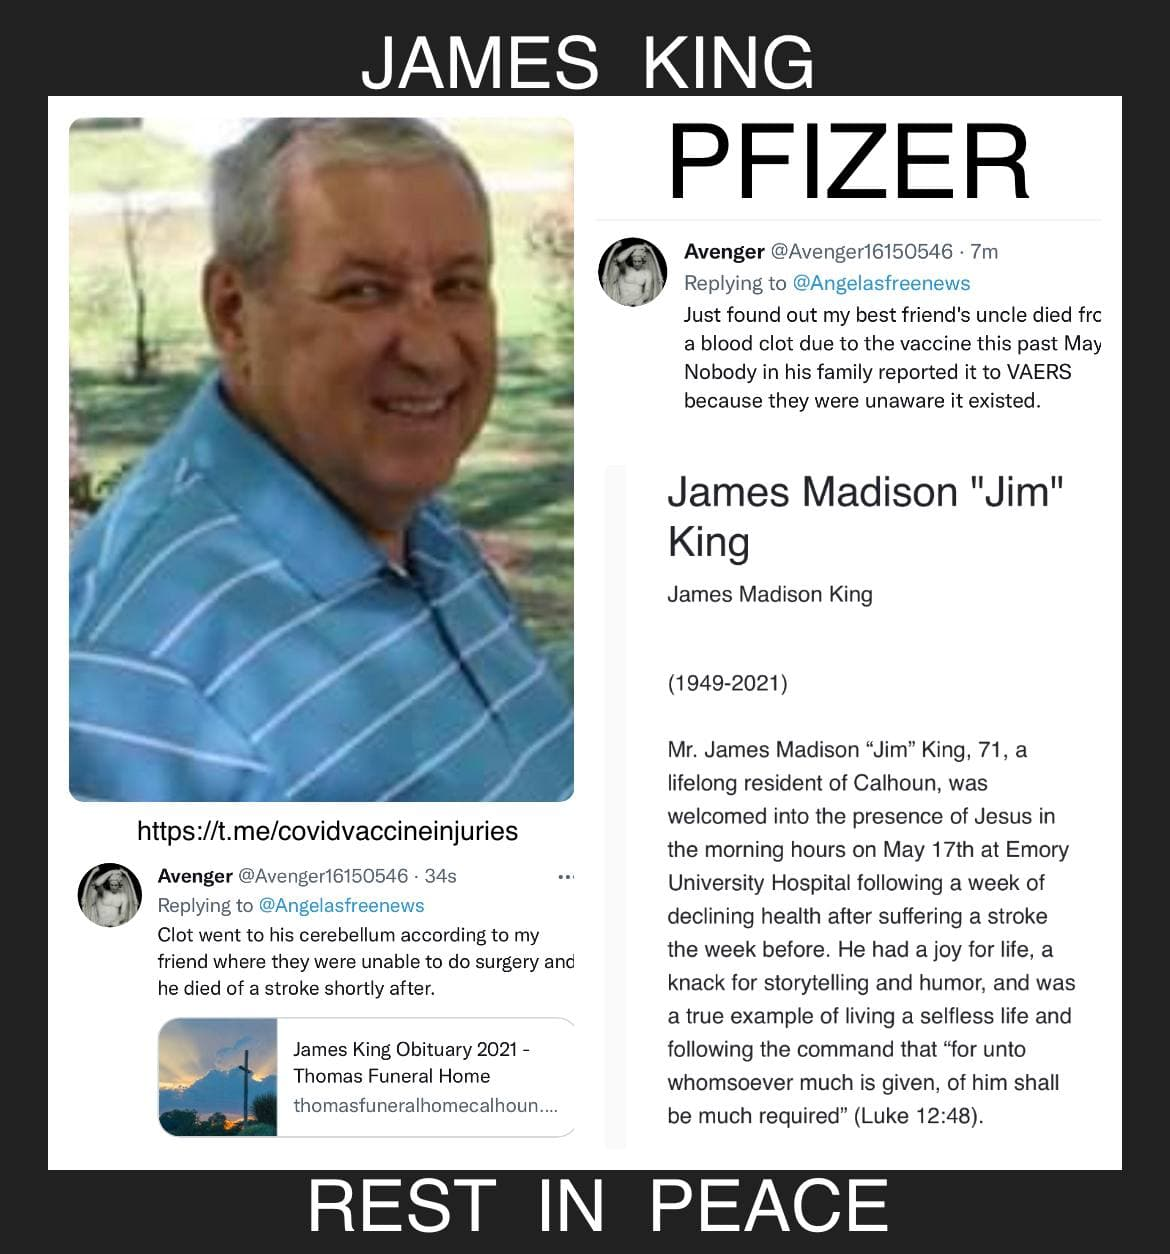 James King: Rest in Peace